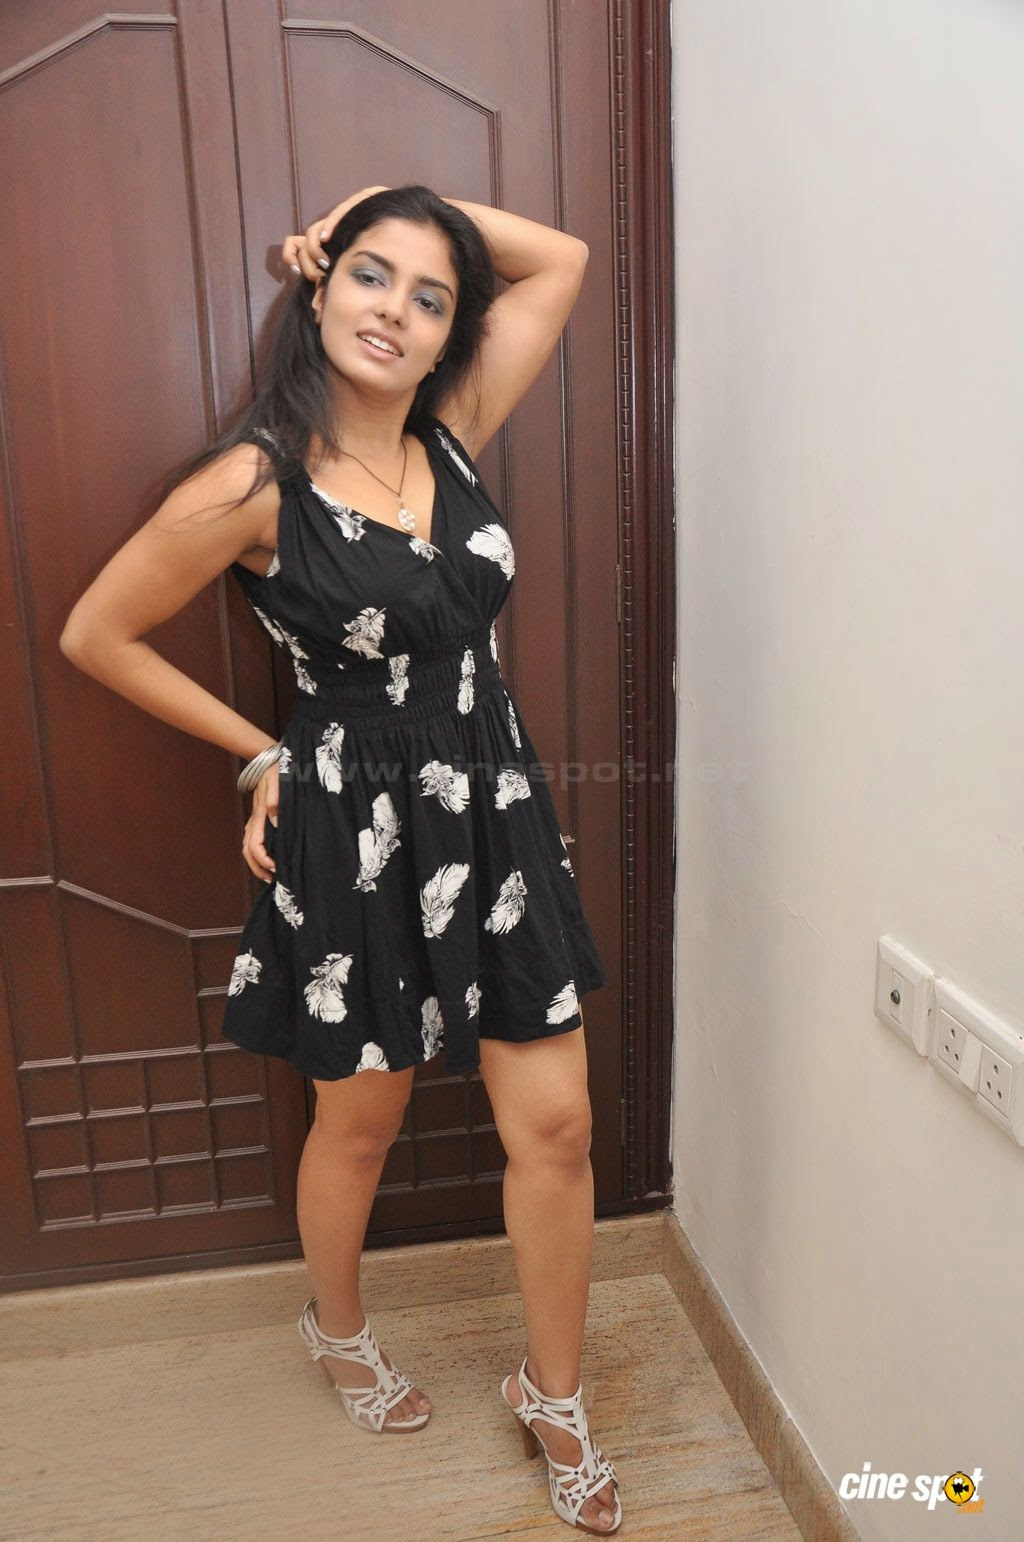 Janavi Looking Hot in Black Dress